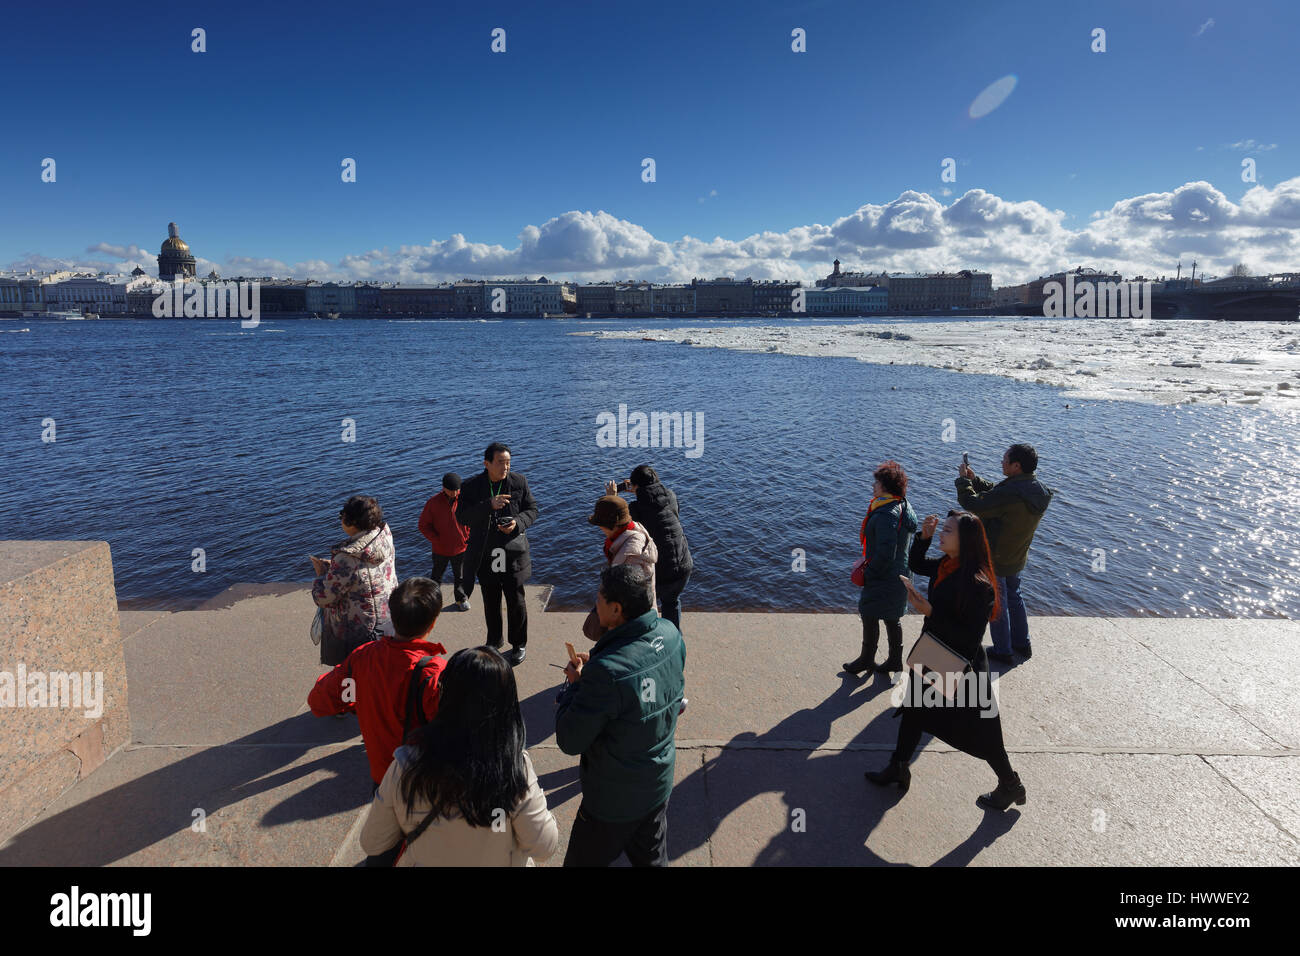 St. Petersburg, Russia, 23rd March, 2017. Chinese tourists make photos on the embankment of river Neva during the Stock Photo